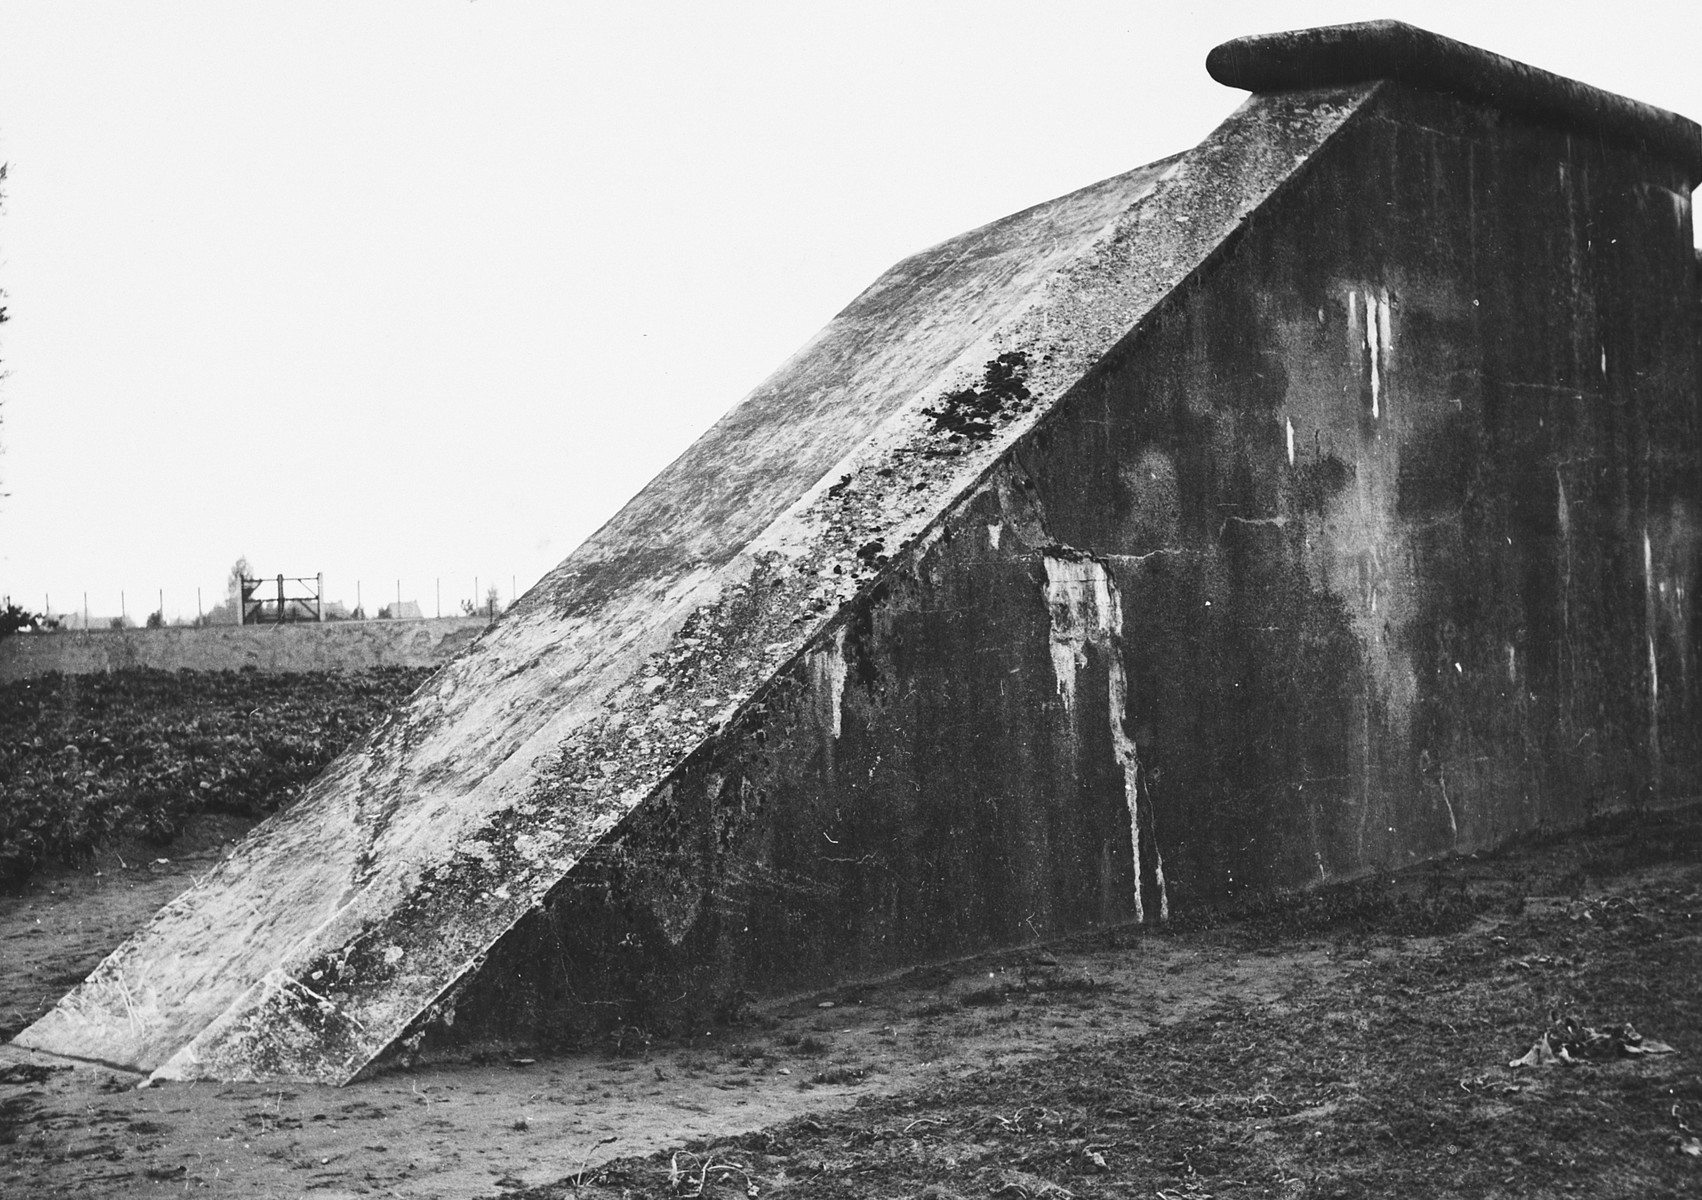 View of a steep ramp in the Breendonck concentration camp.  Prisoners were forced to crawl up and down this ramp with back packs filled with stones.